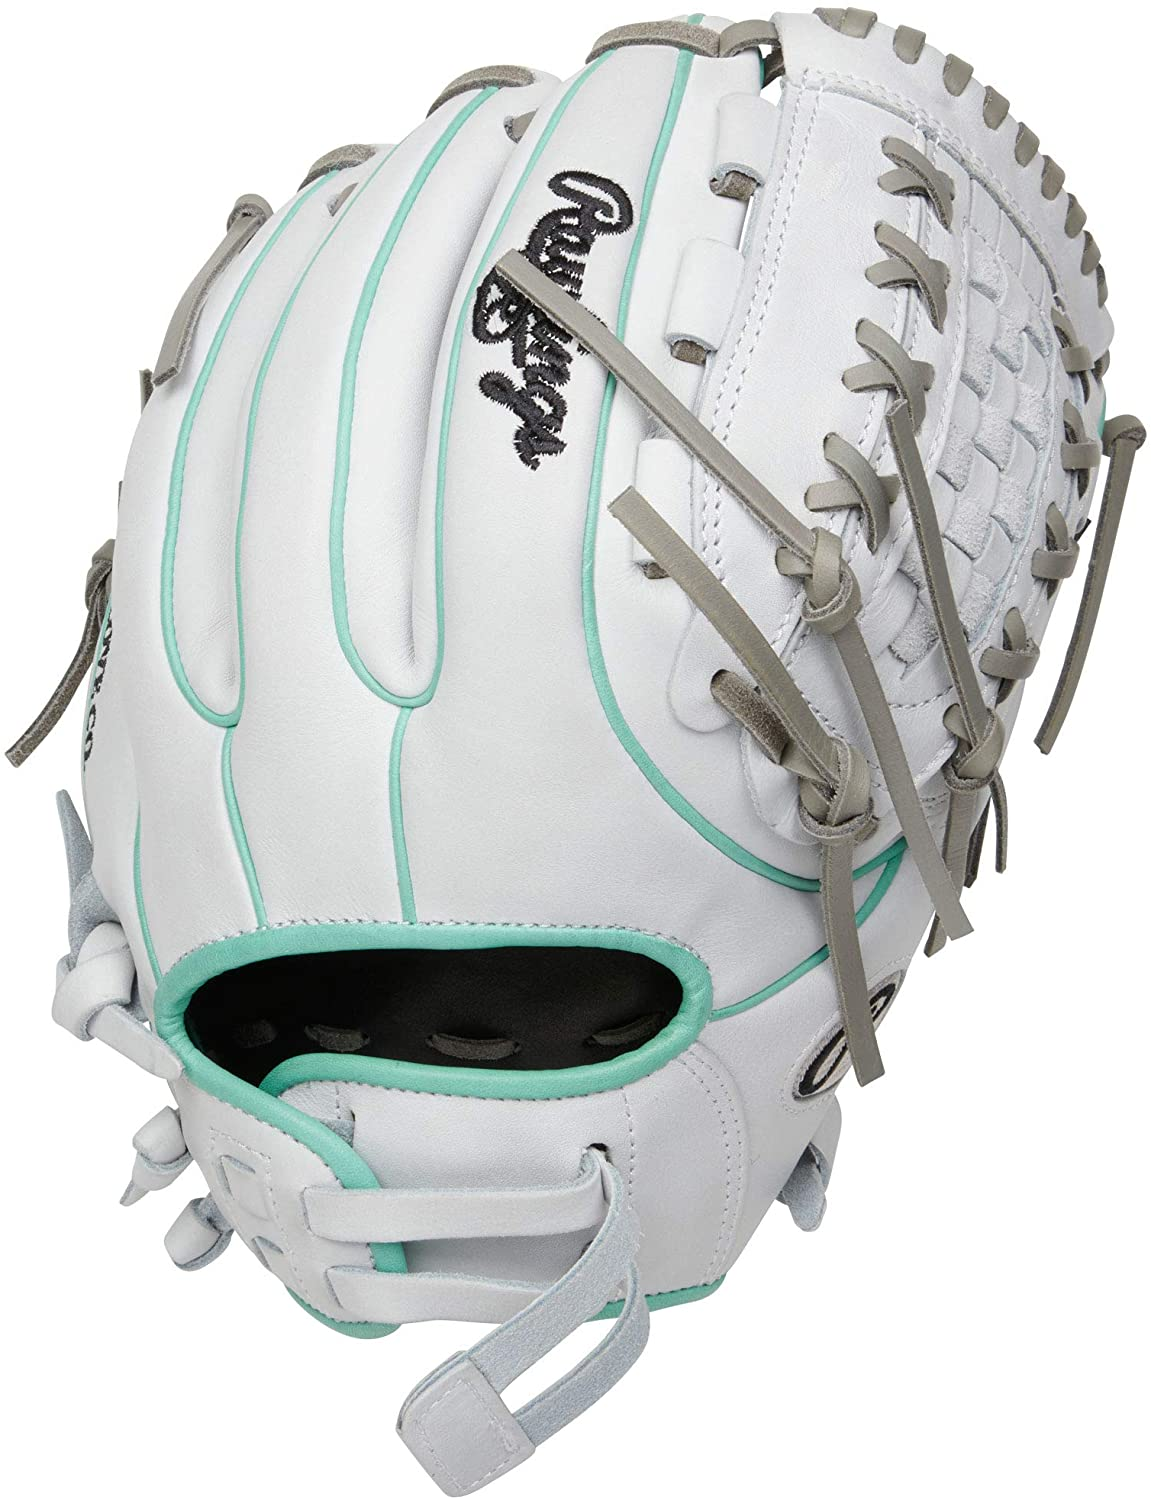 rawlings-heart-of-hide-12-softball-glove-basket-web-right-hand-throw PRO716SB-18WM-RightHandThrow Rawlings 083321702709 <span>The Heart of the Hide fastpitch softball gloves from Rawlings provide